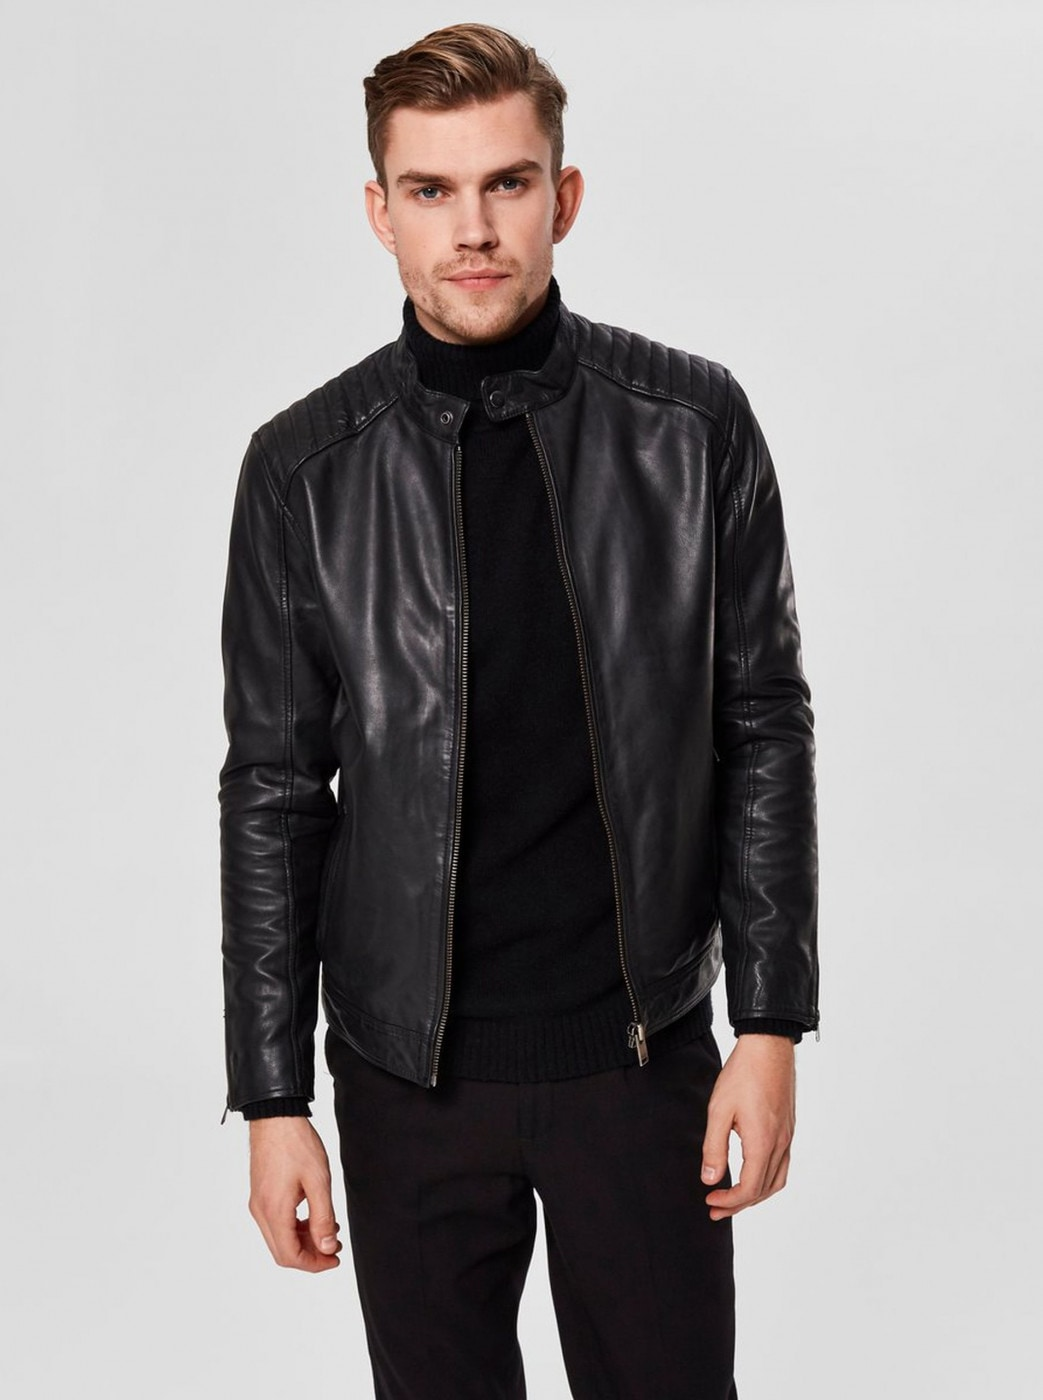 Black Leather Jacket with Zippers on Sleeves Selected Homme